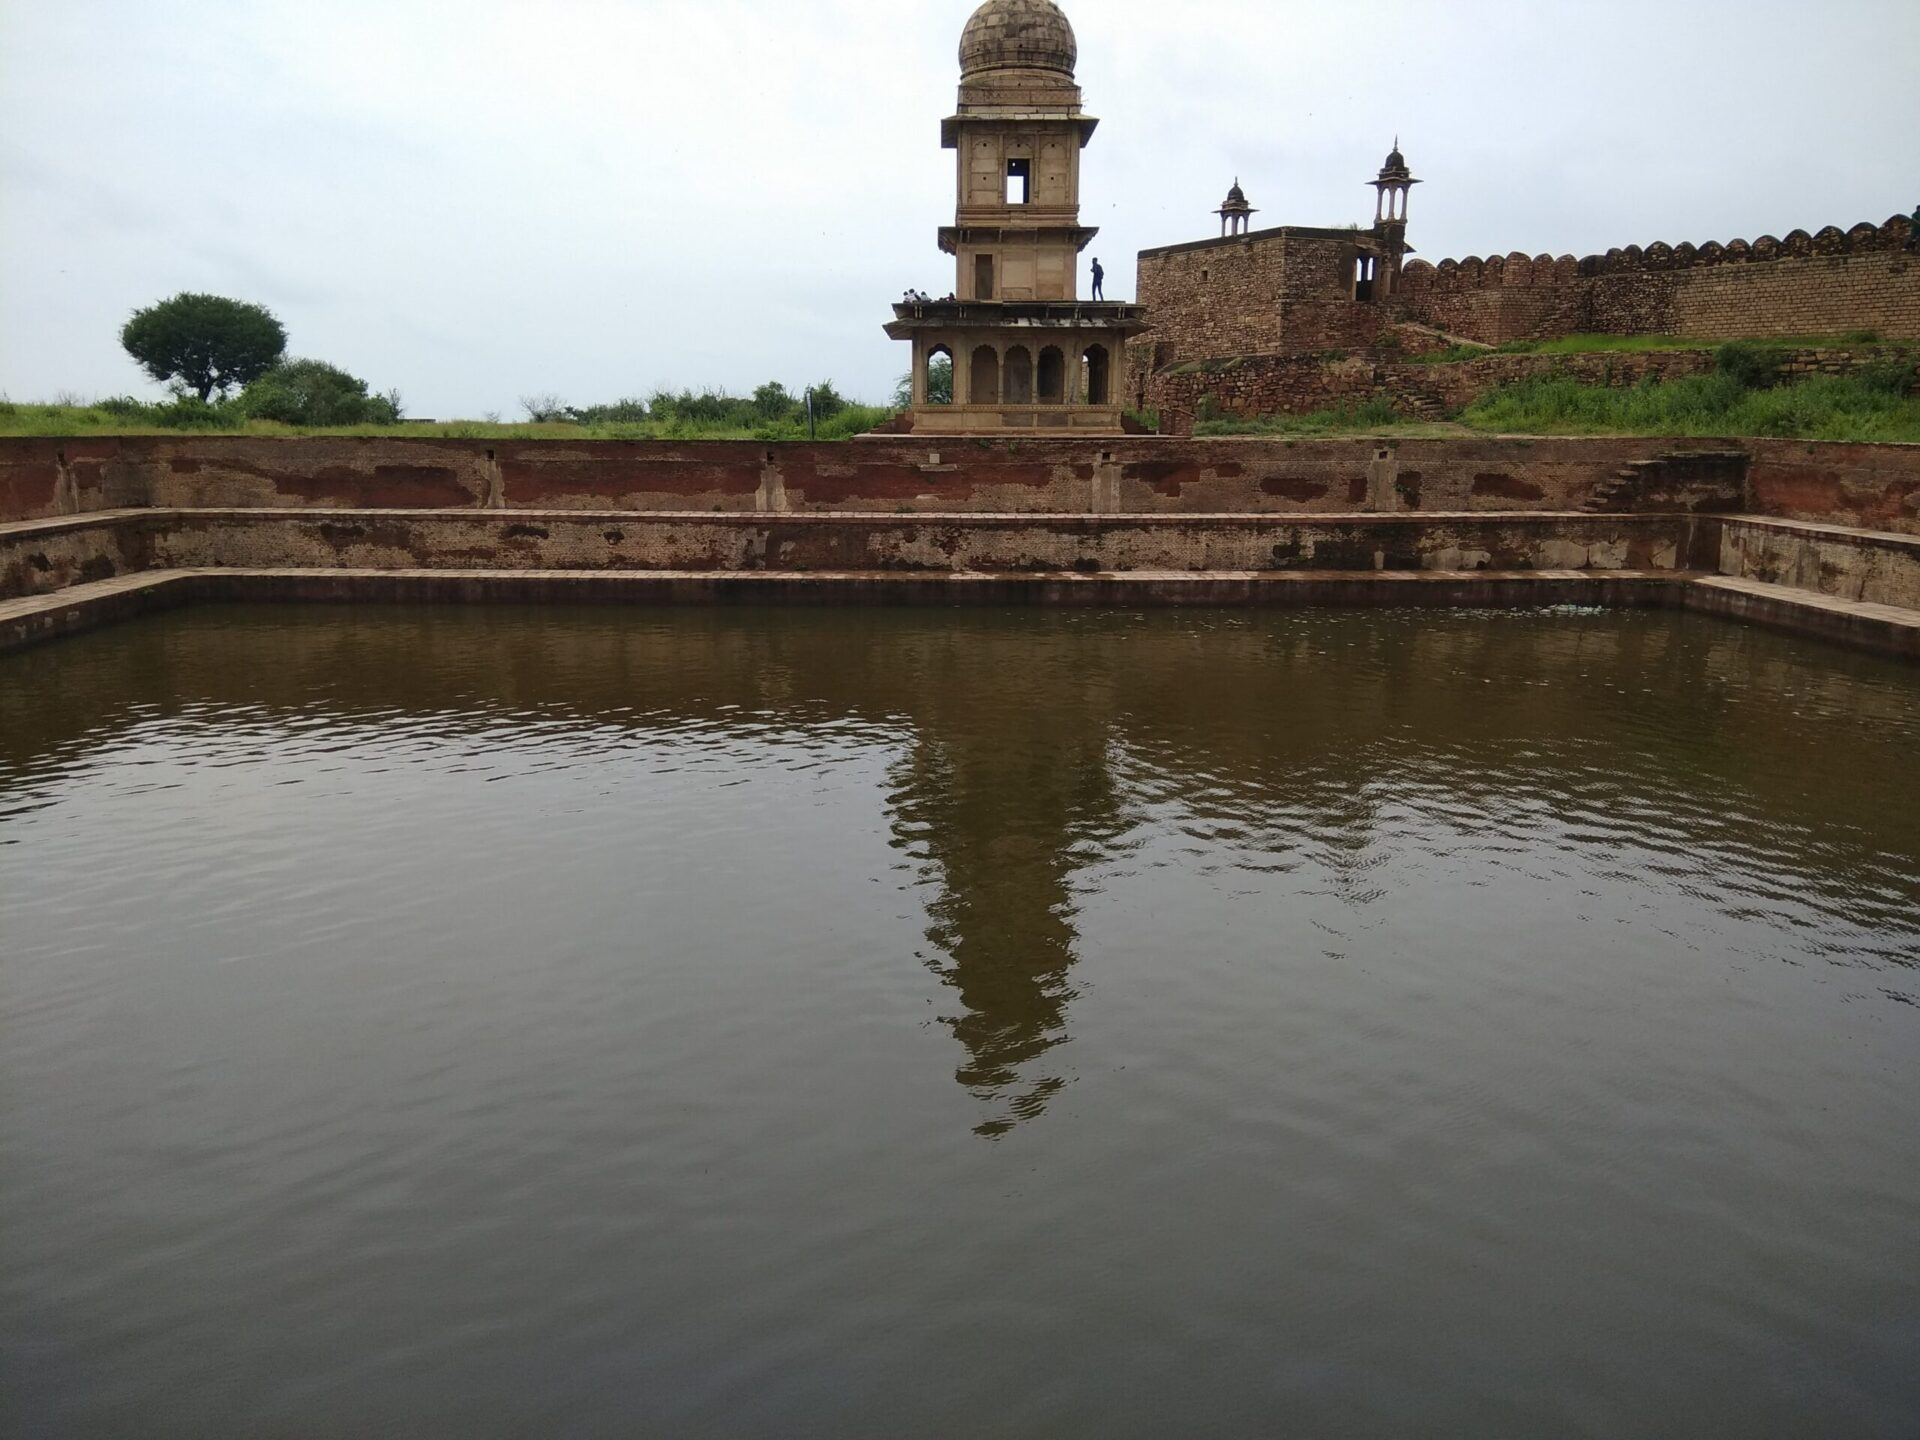 Kund/Water Tank inside the Gwalior Fort